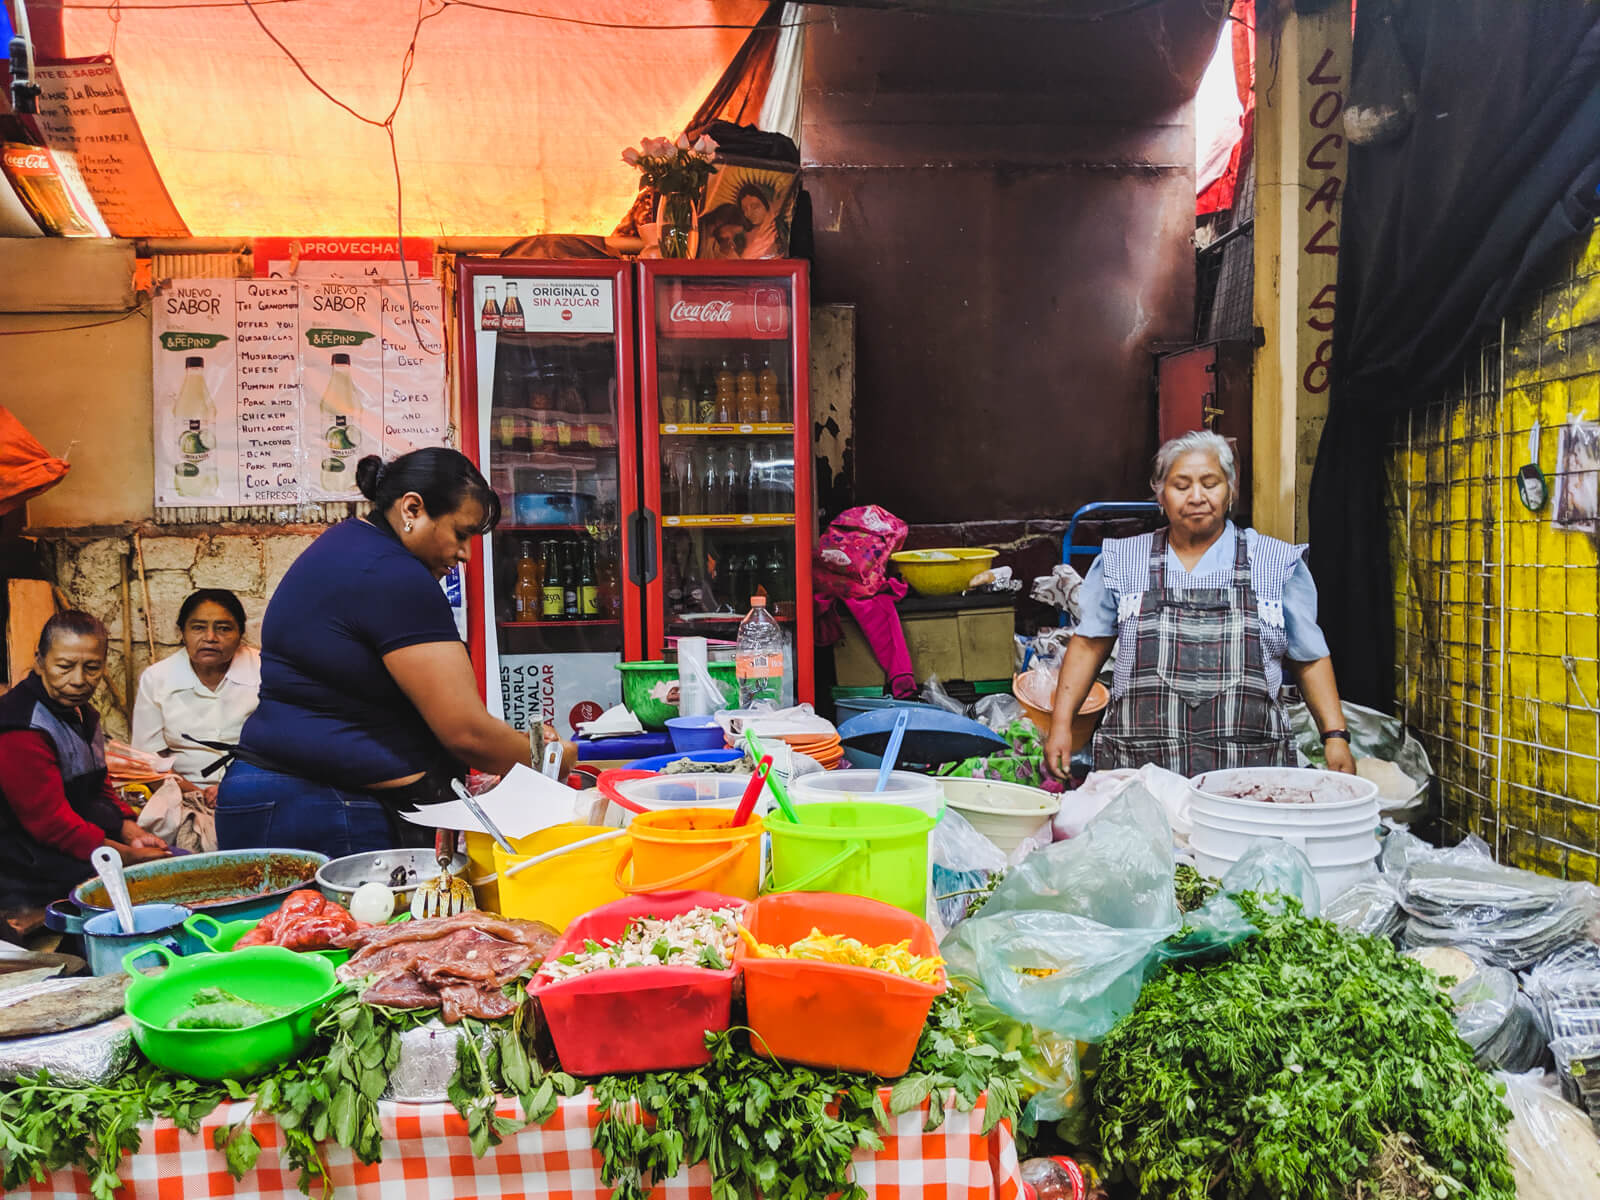 A Mexico City market tour stops at a lunch stand with two women selling herbs and quesadillas